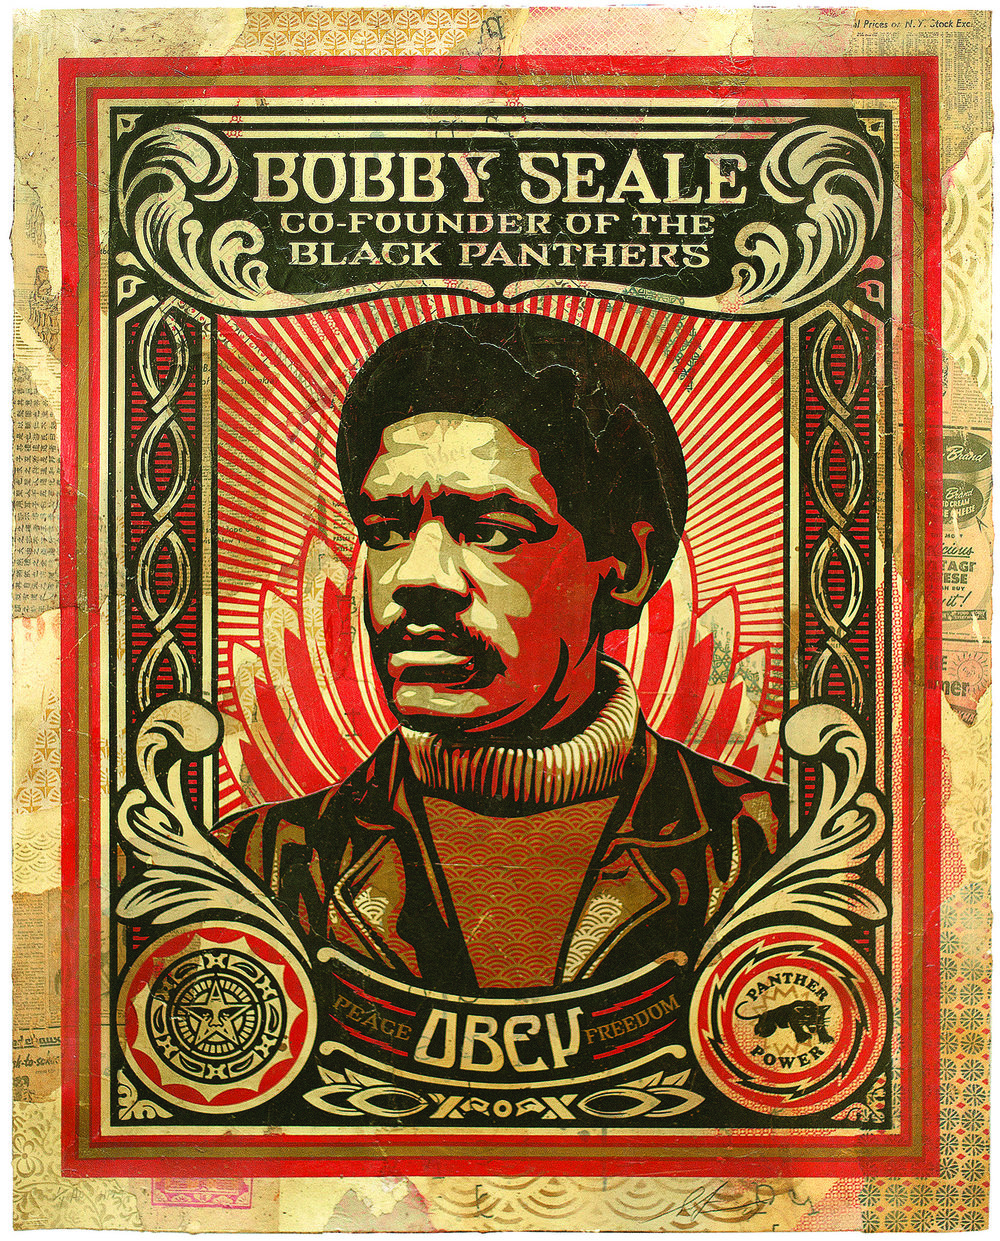 SHEPARD FAIREY | BOBBY SEALE, 2004 | Silkscreen and Mixed Media Collage on Paper, HPM 36 x 46 in